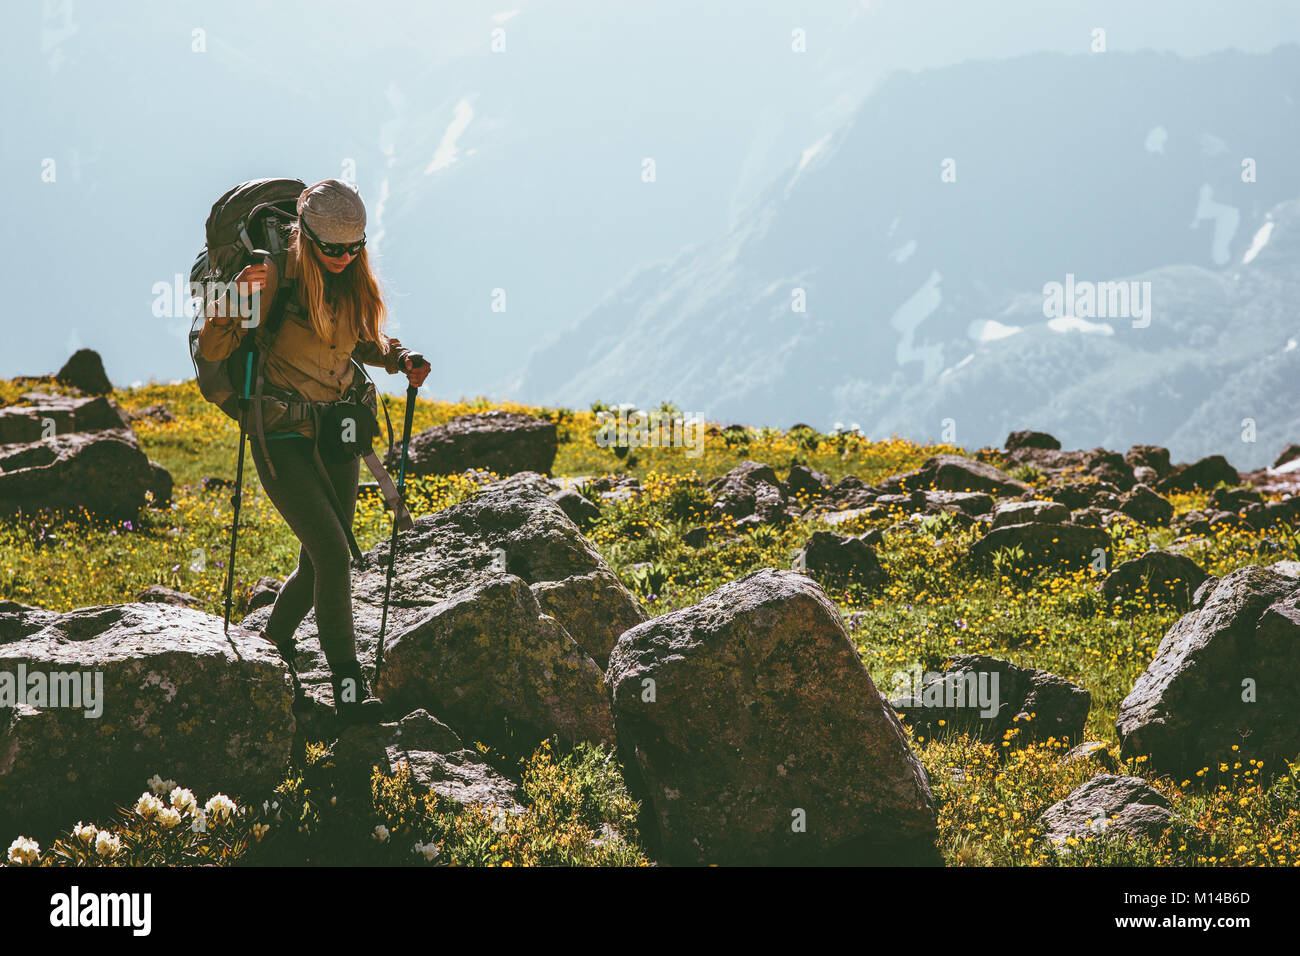 Active vacations in mountains woman hiking with backpack adventure Travel Lifestyle concept outdoor mountaineering - Stock Image